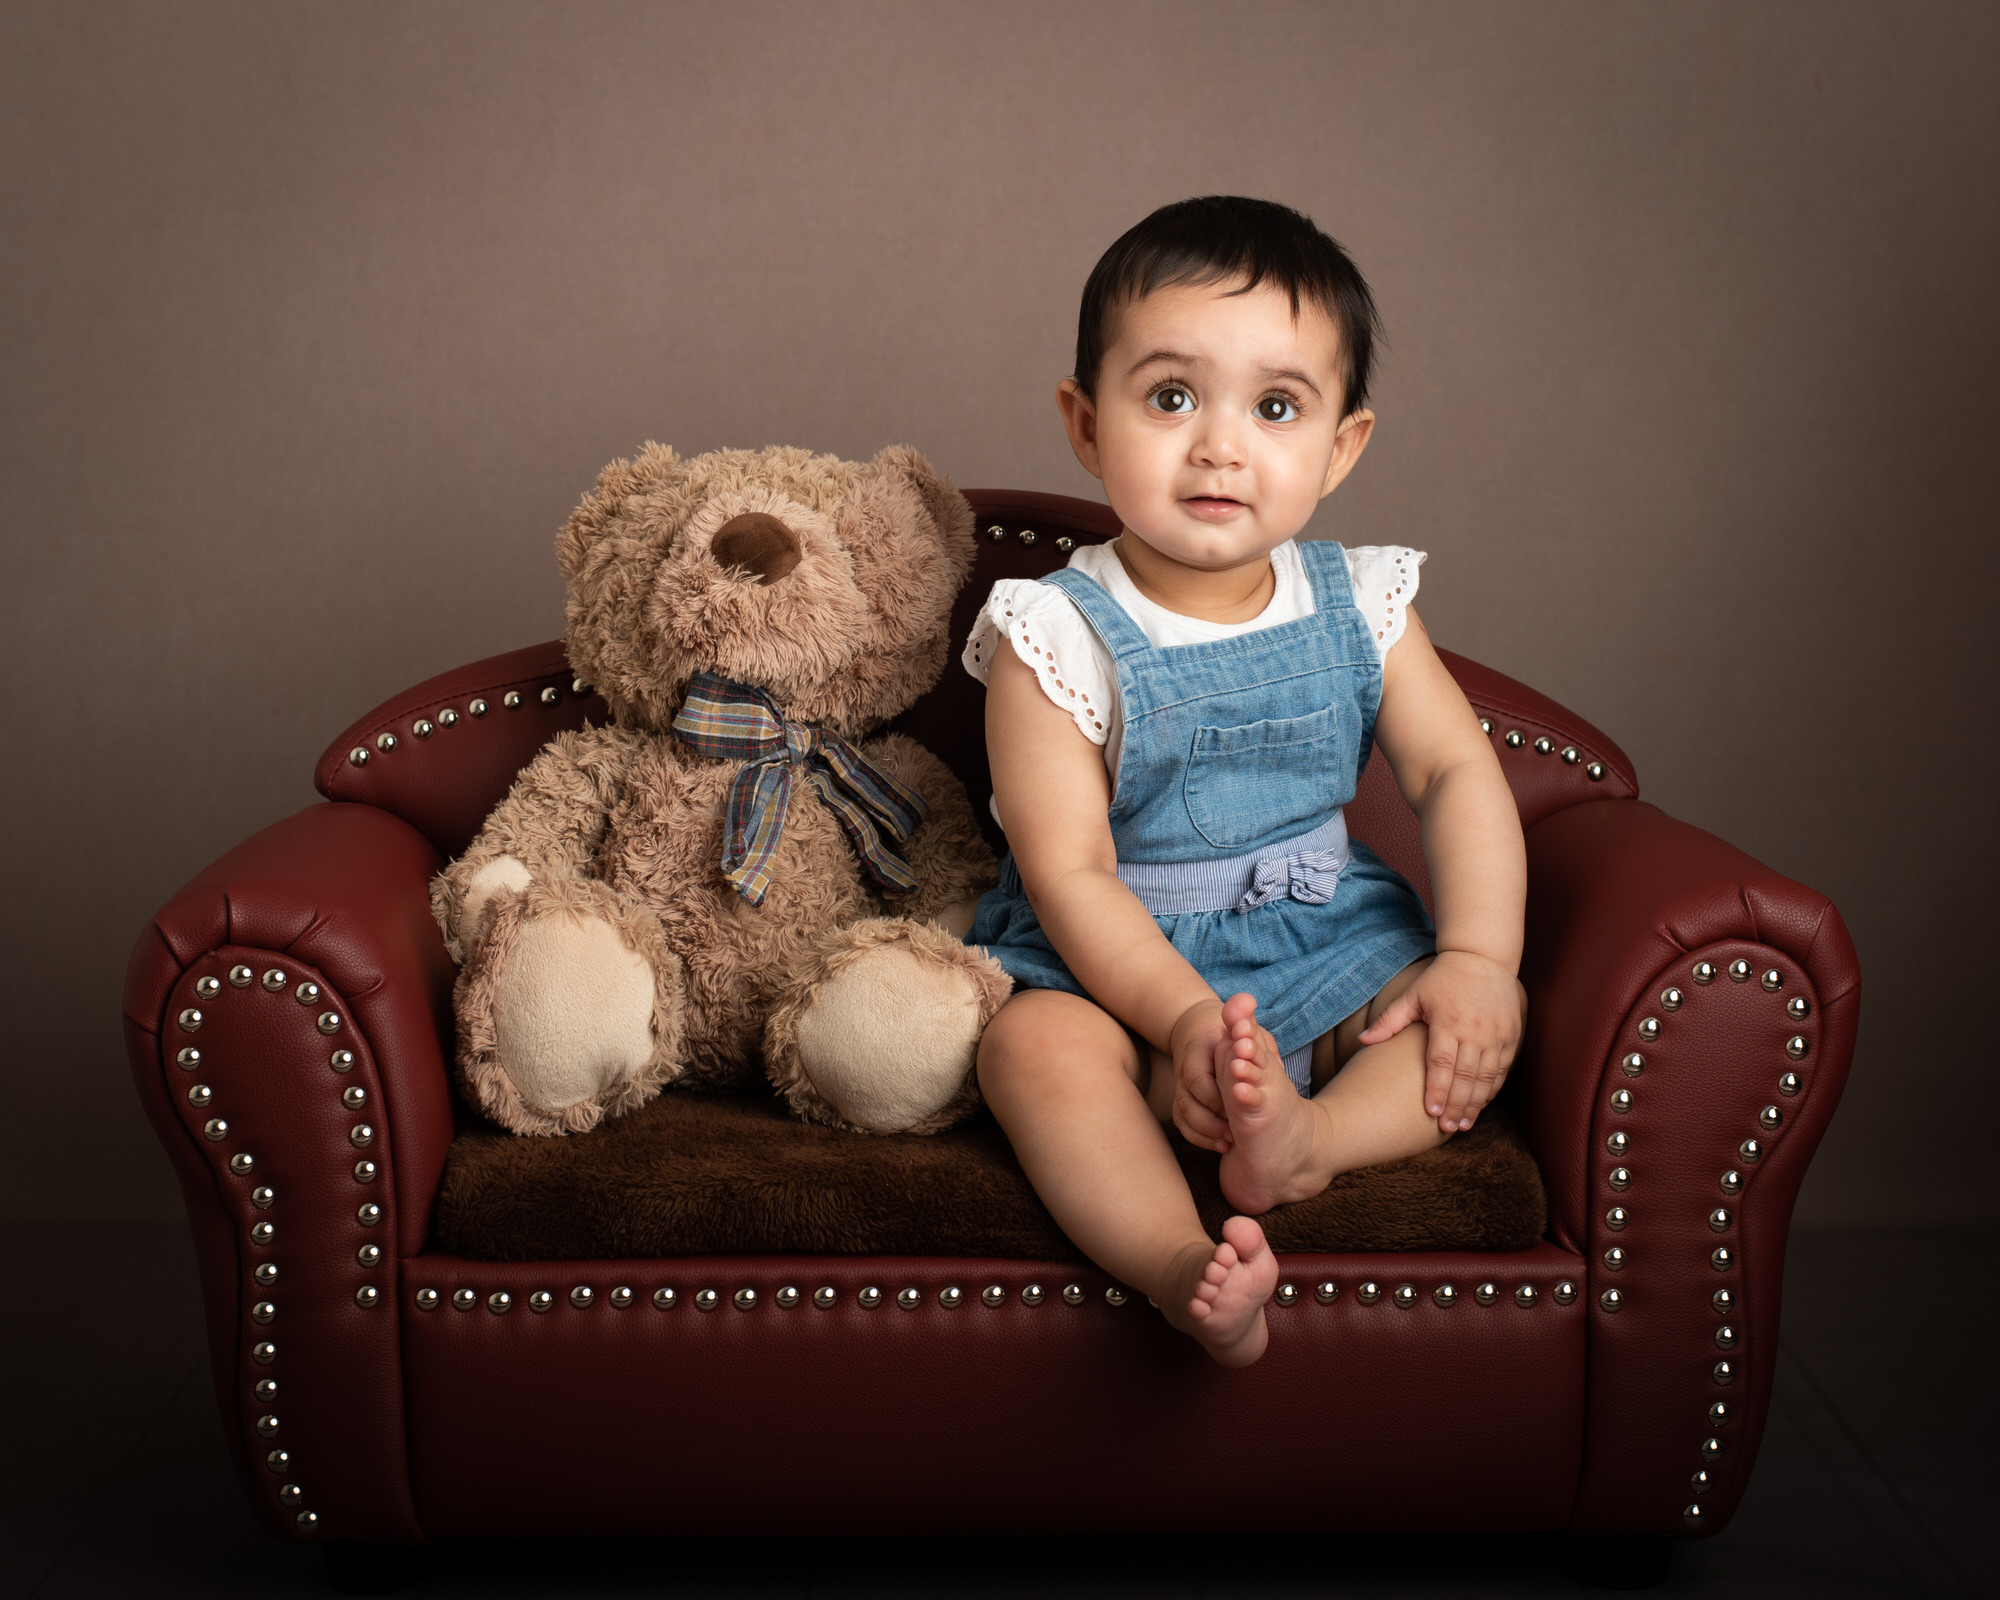 baby_photographer_dudley_midlands_sitting_on_chair